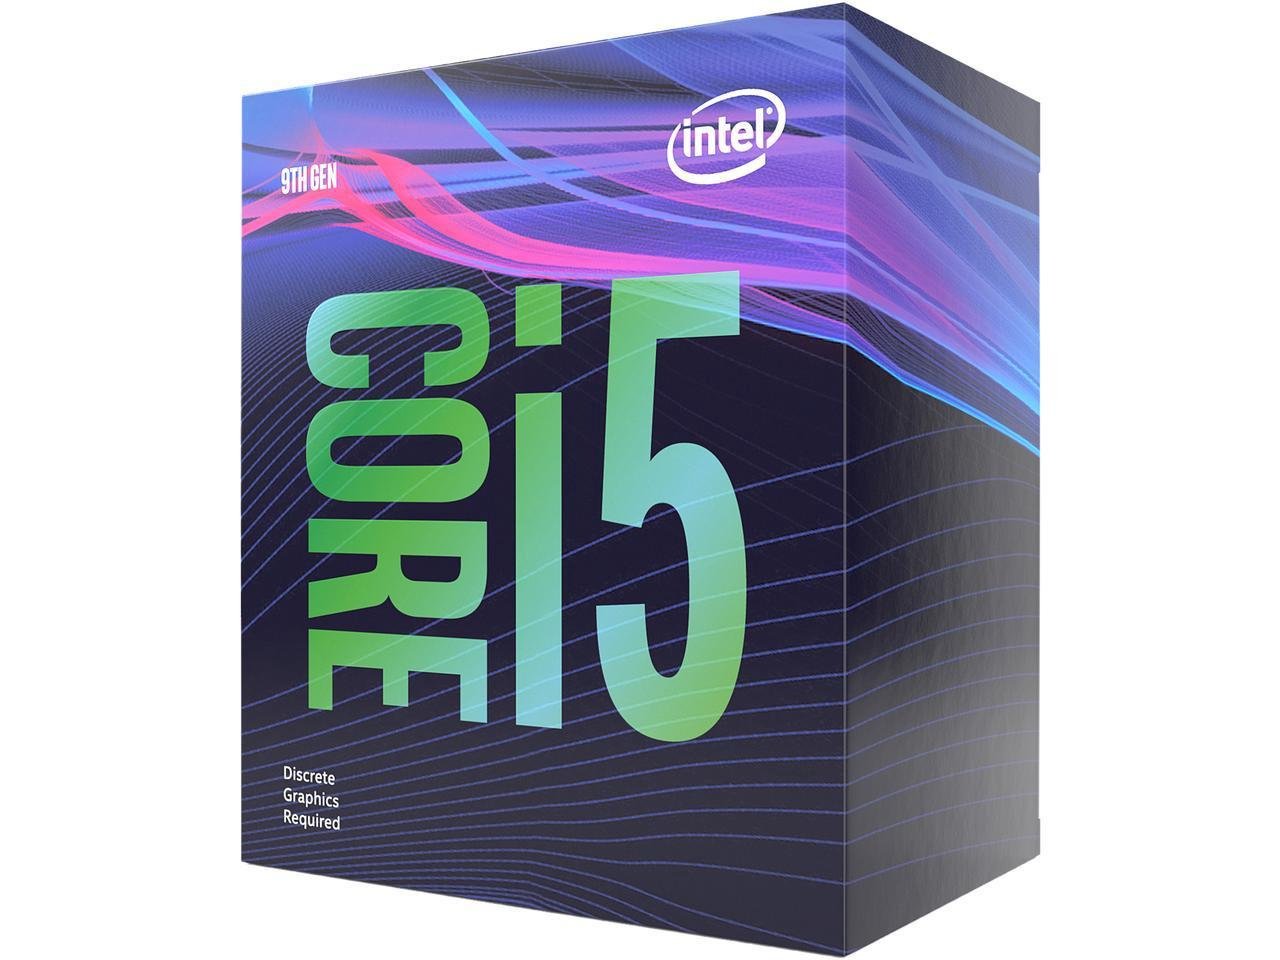 Intel Core i5-8600K Coffee Lake 6-Core 3.6 GHz (4.3 GHz Turbo) L